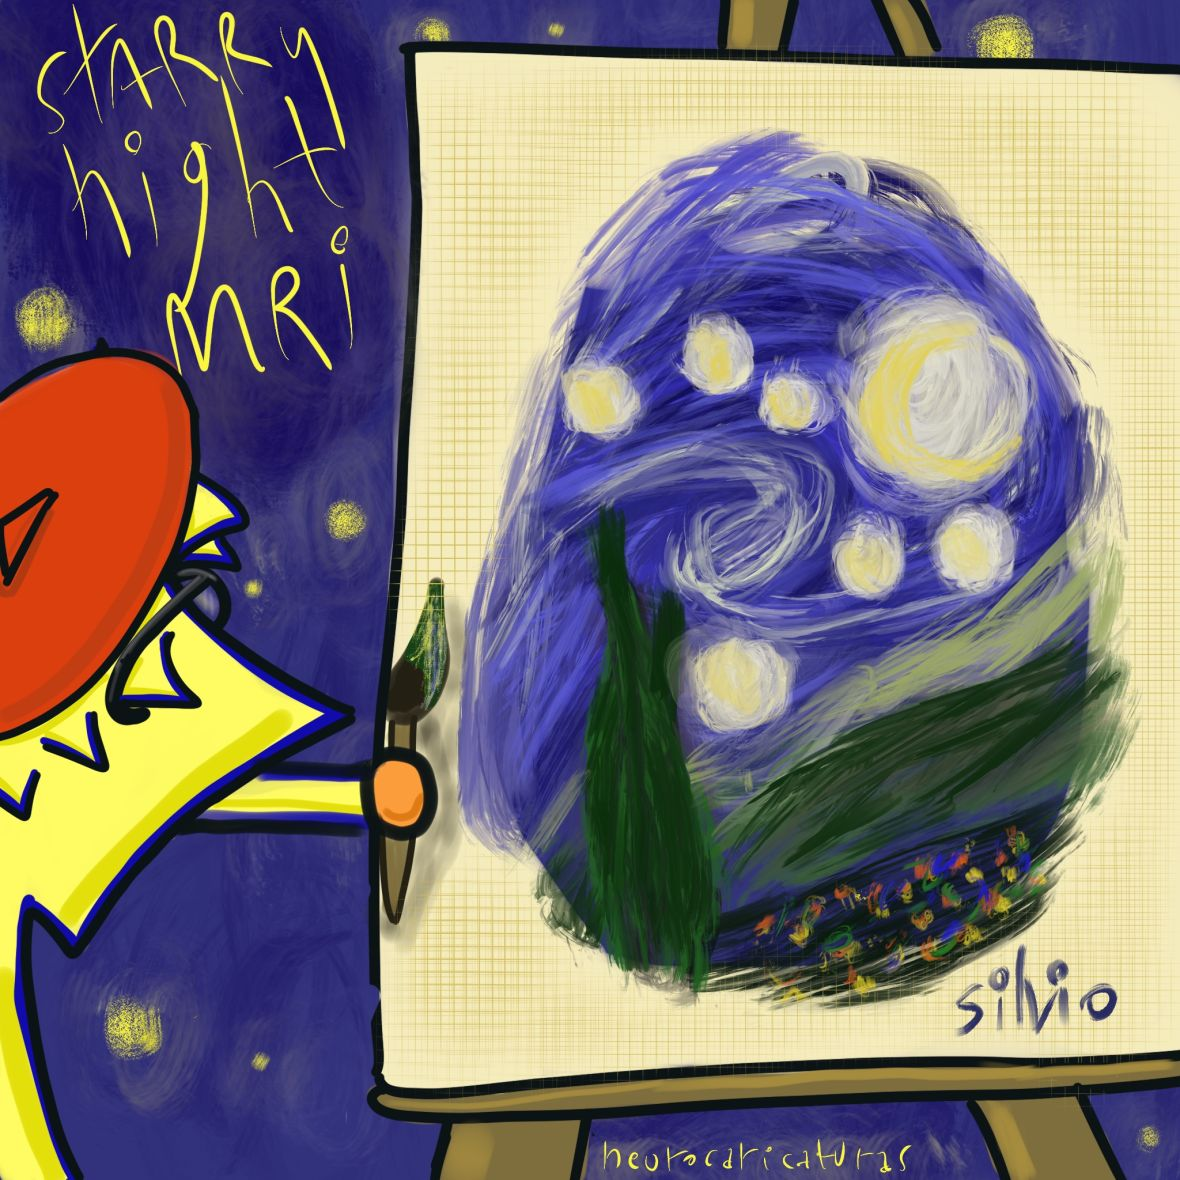 A neuron painting a starry night. It refers to a mri pattern